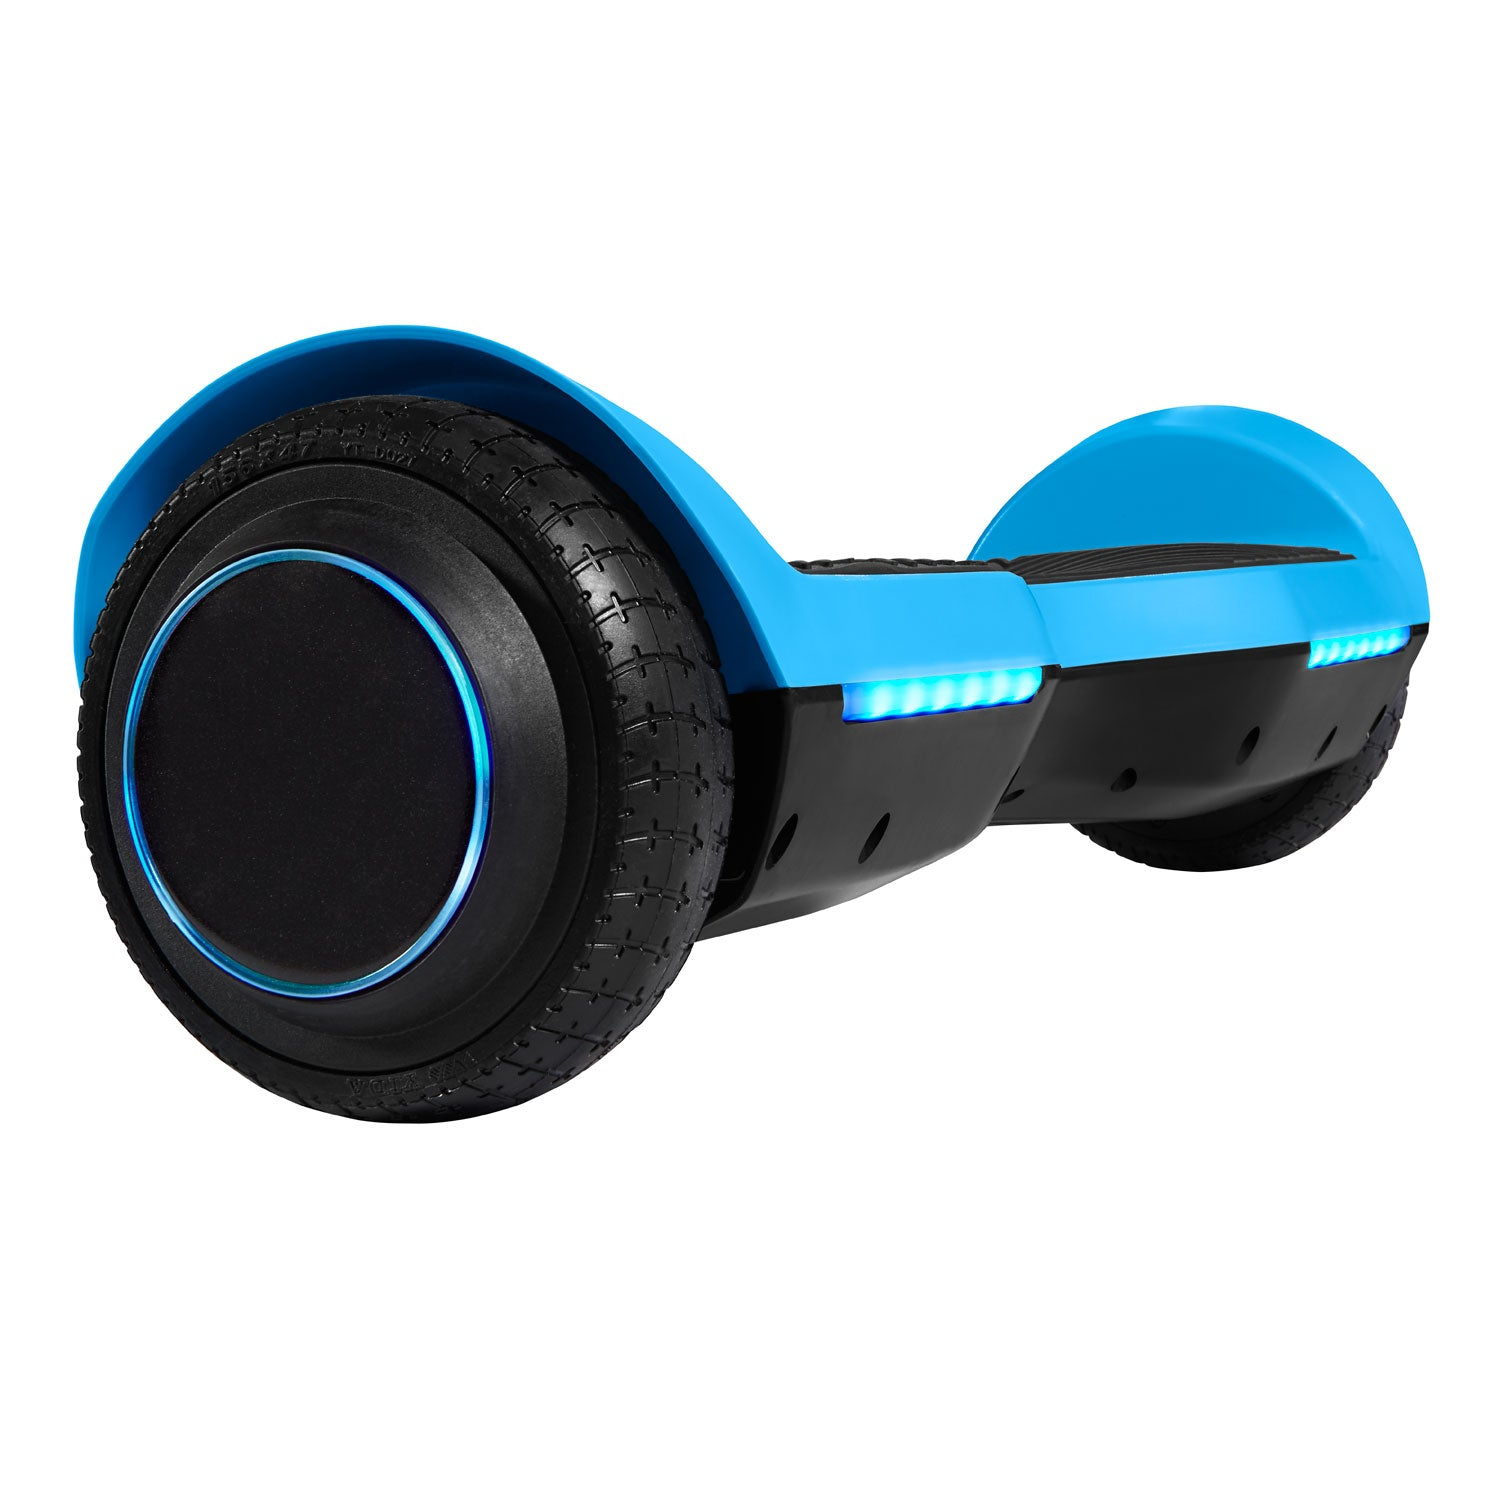 blue Main image srx bluetooth hoverboard